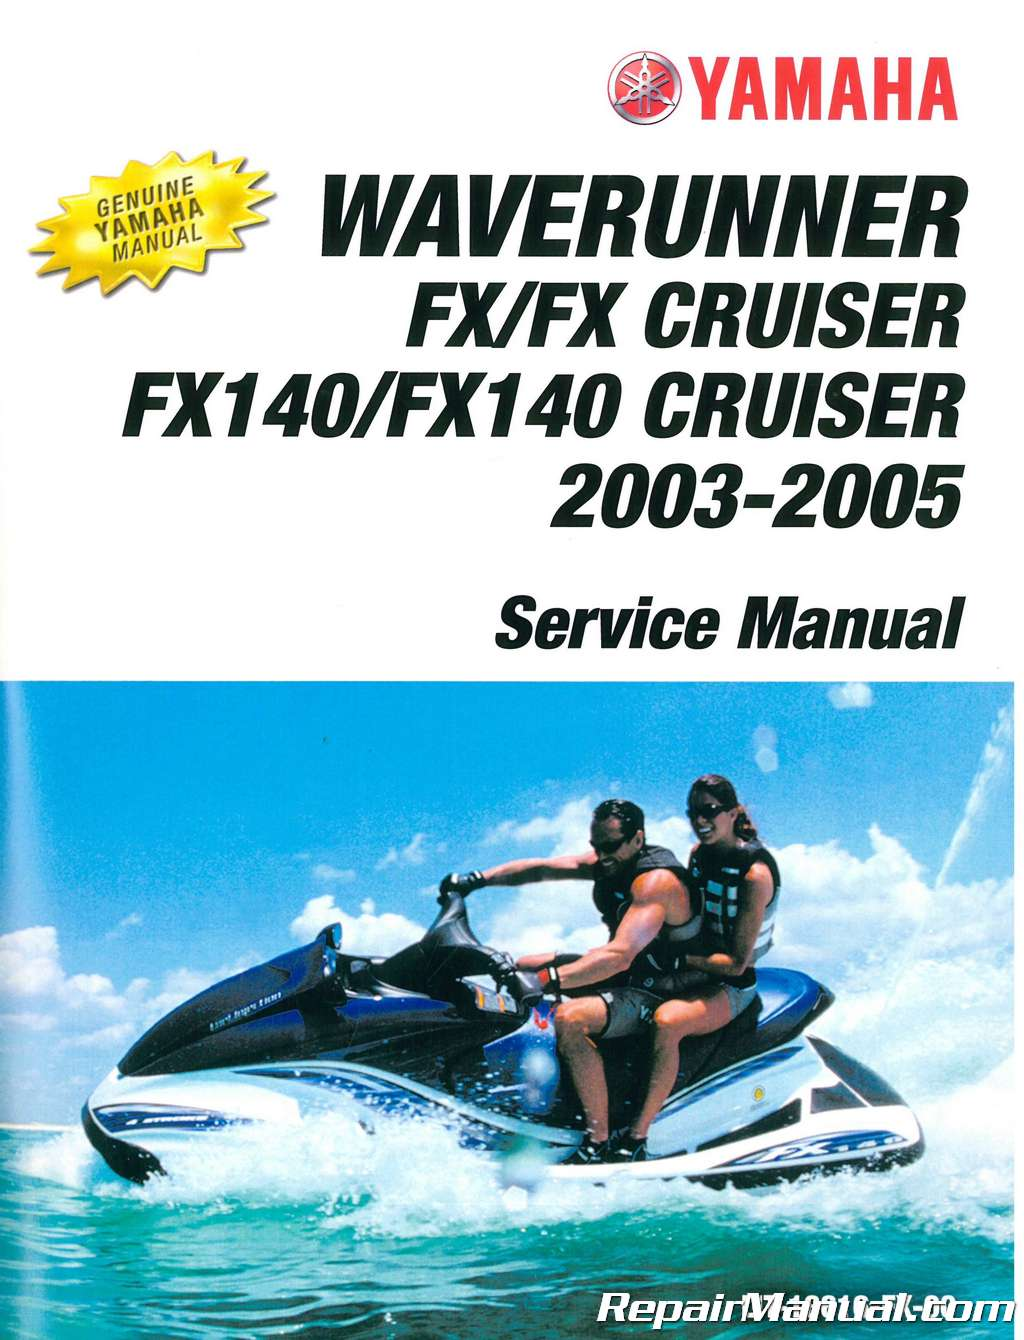 1996 Yamaha Waverunner Manual One Word Quickstart Guide Book Schematics 2003 2005 Fx Cruiser Fx140 Service Rh Repairmanual Com Waveraider 760